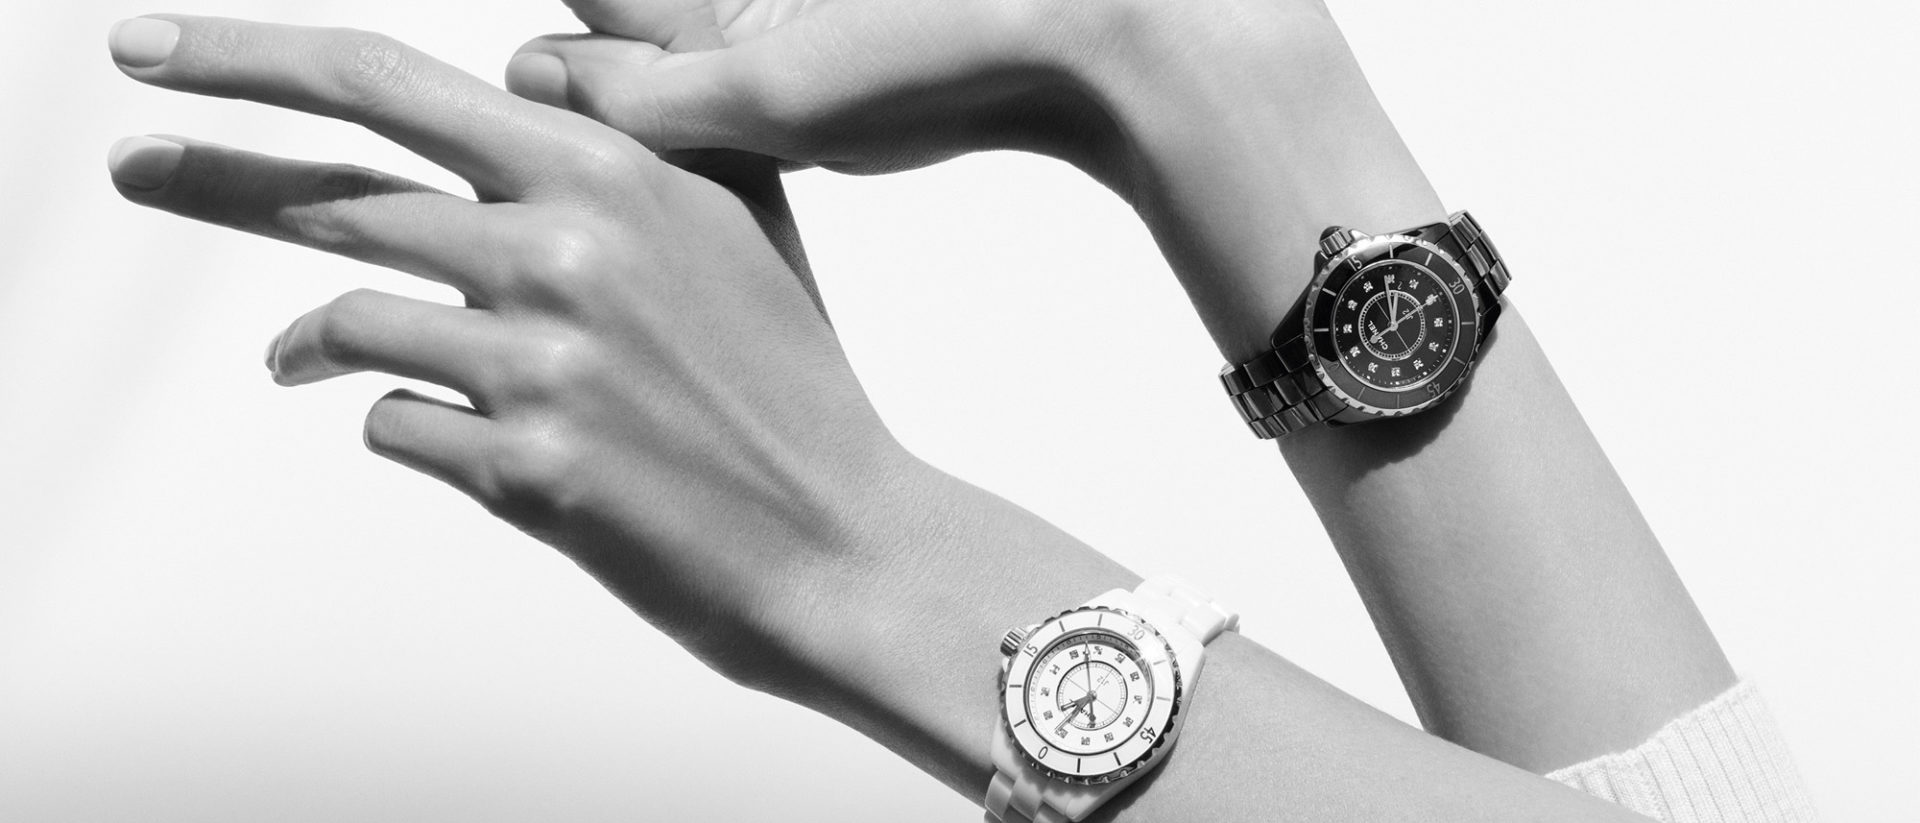 Chanel-Banner-Hall-of-Time-chanel-horlogerie-passion-horlogere